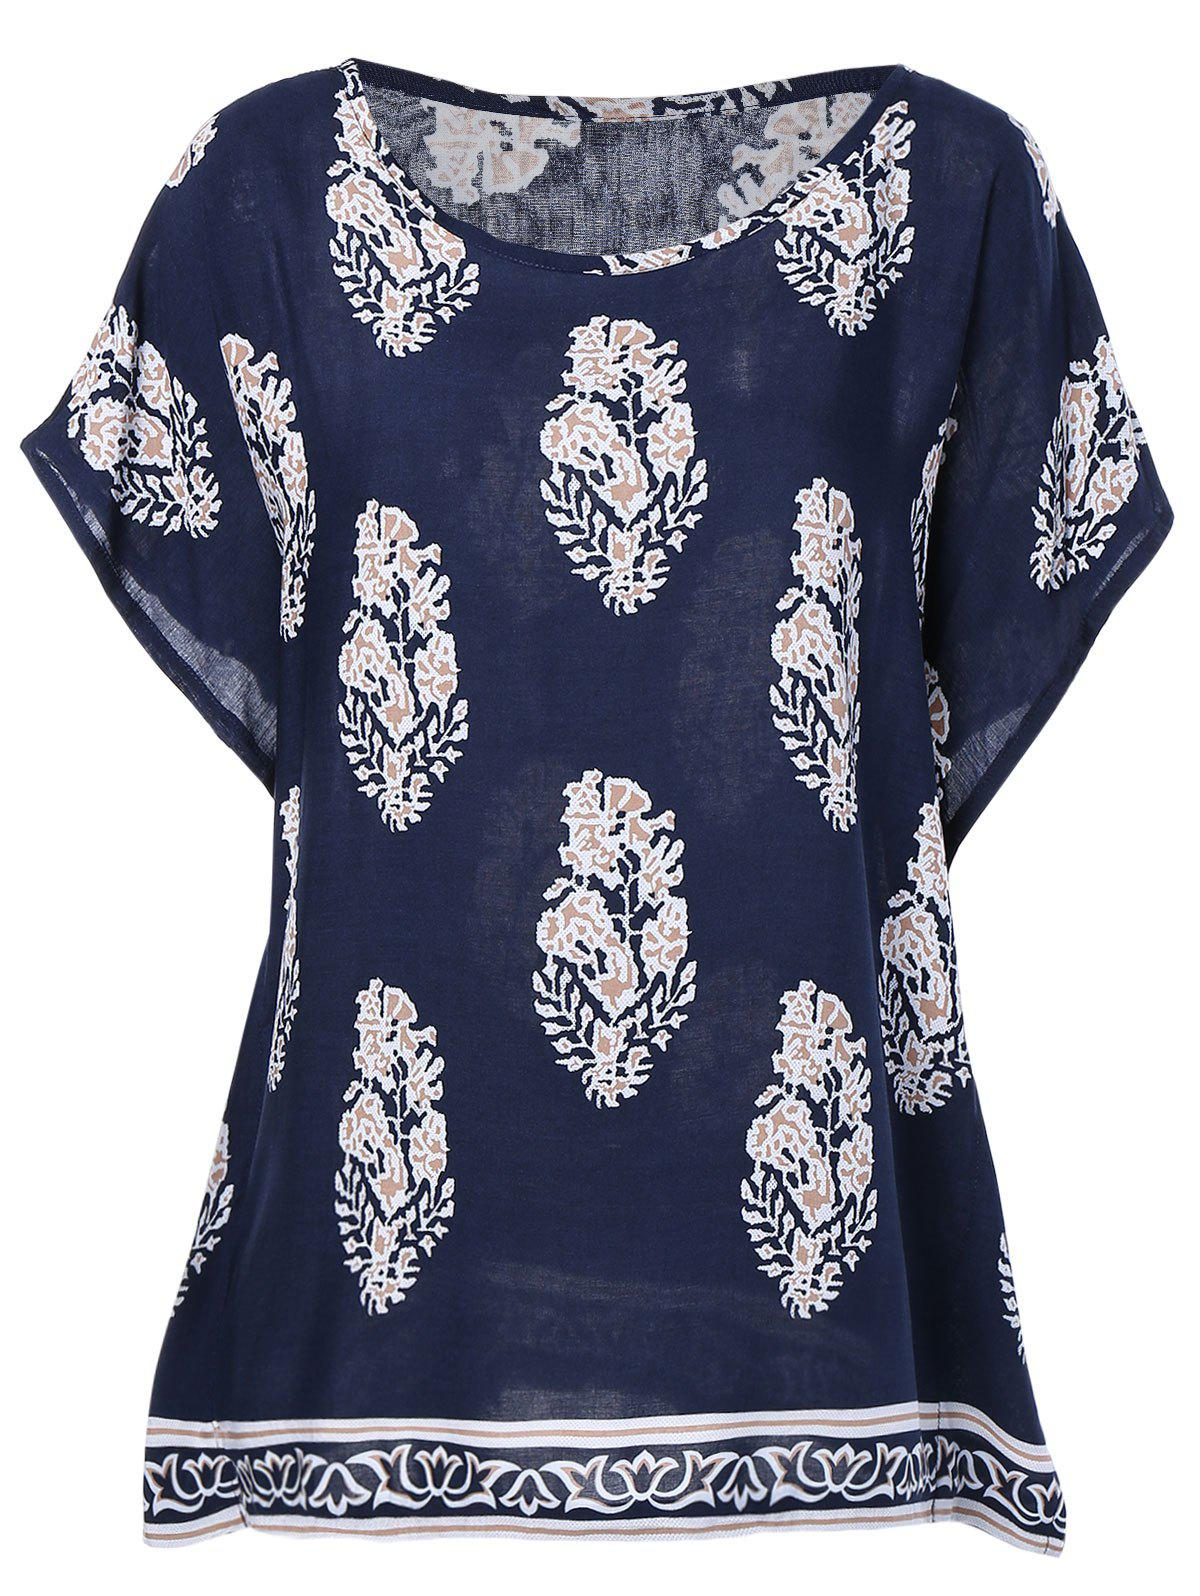 Ethnic Style Women's RoundNeck Print Short Sleeves Top - PURPLISH BLUE ONE SIZE(FIT SIZE XS TO M)